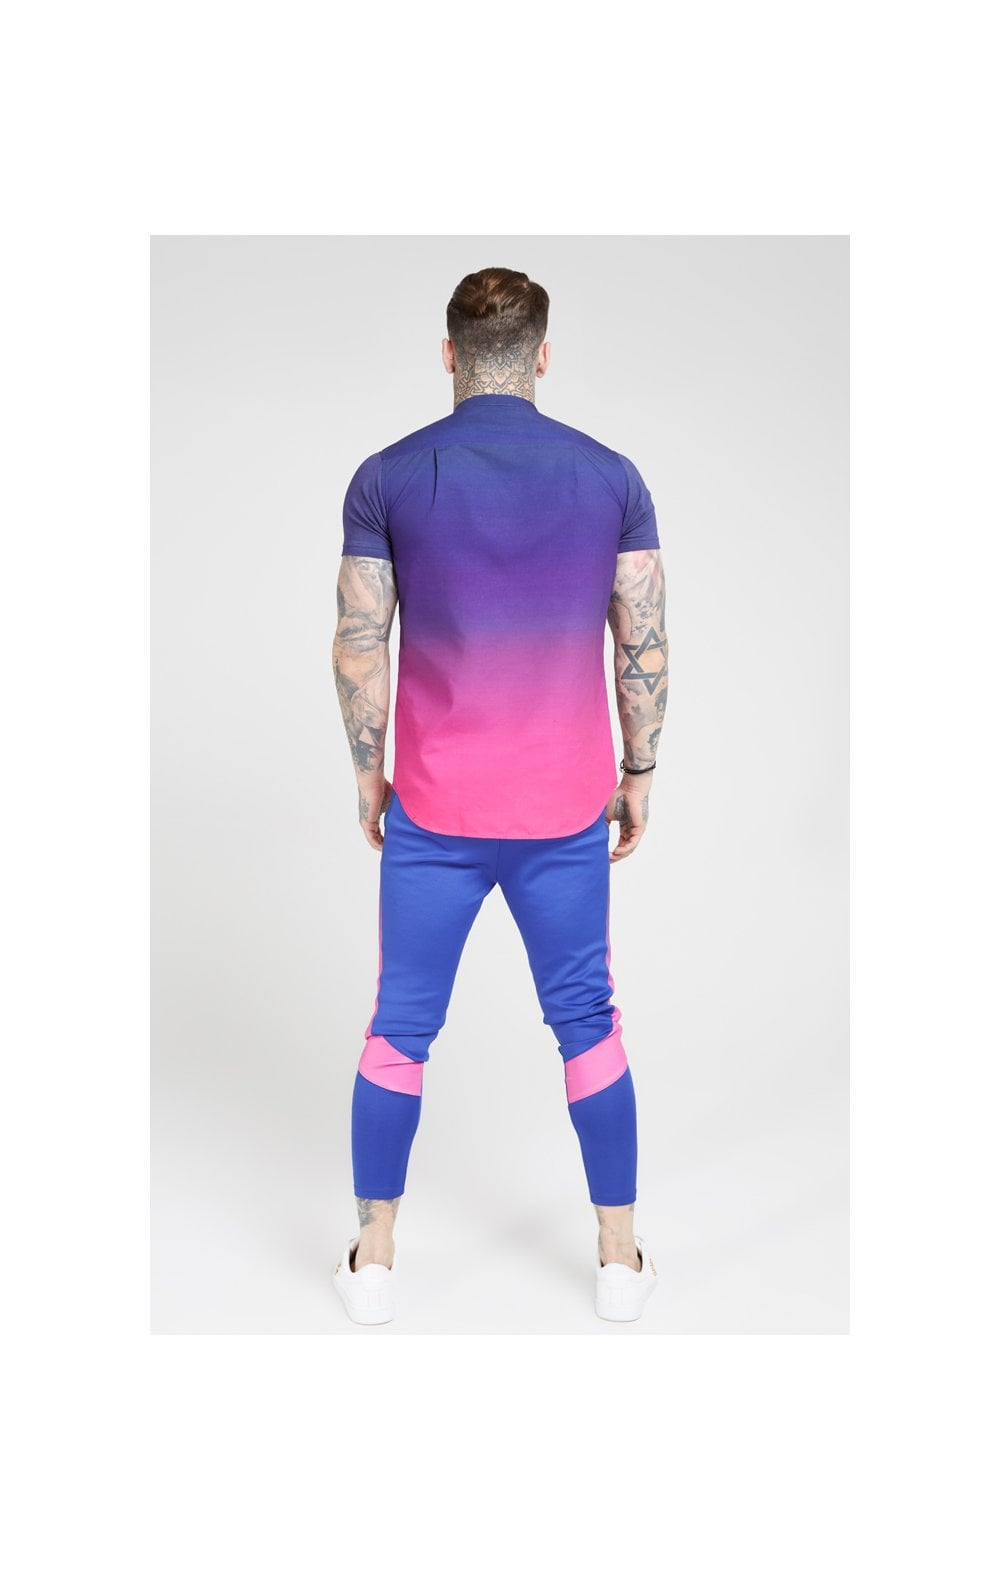 Load image into Gallery viewer, SikSilk S/S Fade Grandad Shirt – Navy & Neon Fade (5)